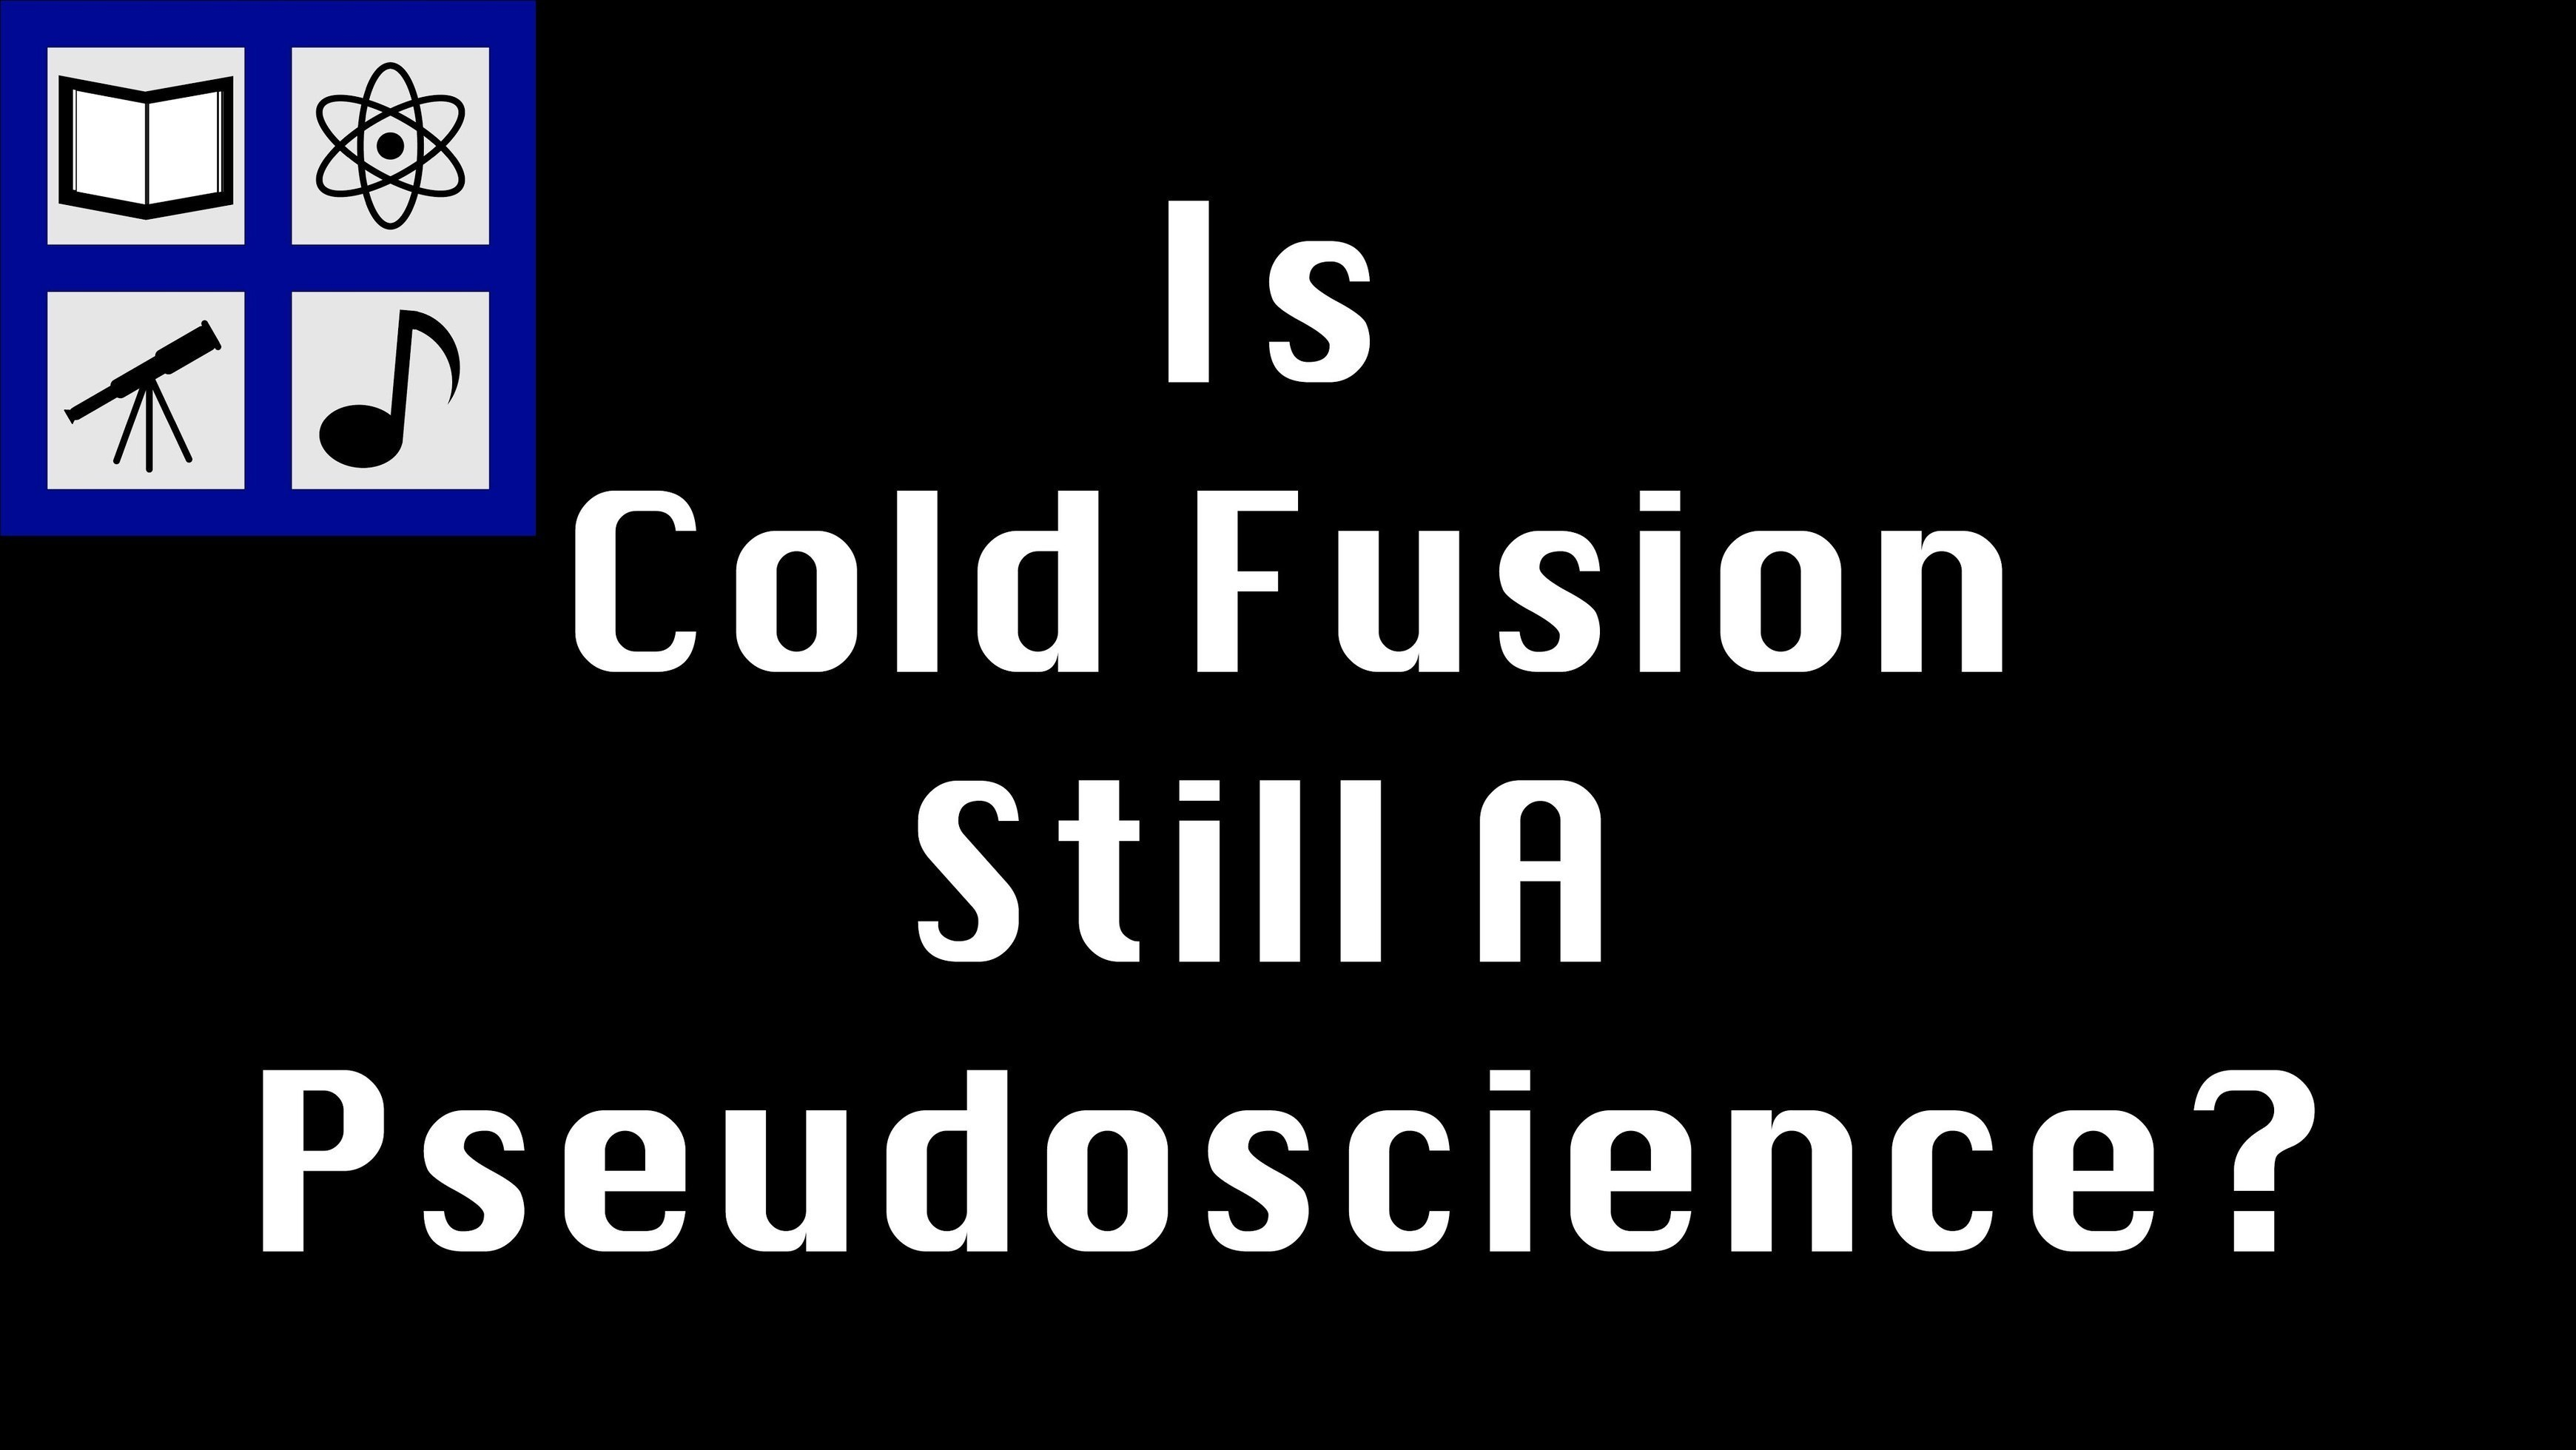 an overview of the process of cold fusion and the continuing mystery in 1989 On 30 april 1989 cold fusion was declared dead by the new york times conventional deuteron fusion is a two-step process.